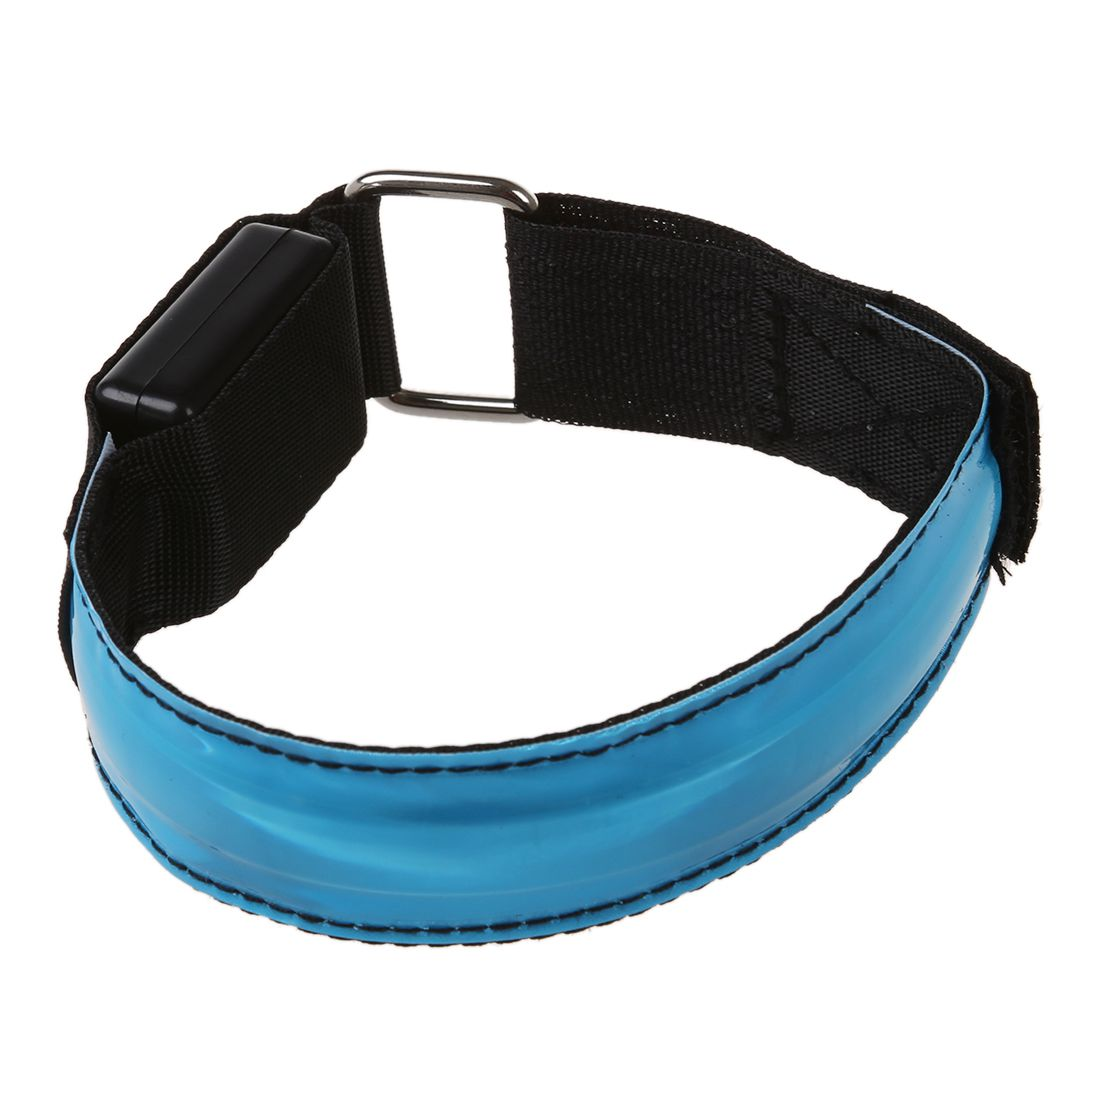 LED Safety Reflective Belt <font><b>Strap</b></font> Snap Wrap Arm Band Armband Running bracelet (<font><b>Battery</b></font> Not included) Blue